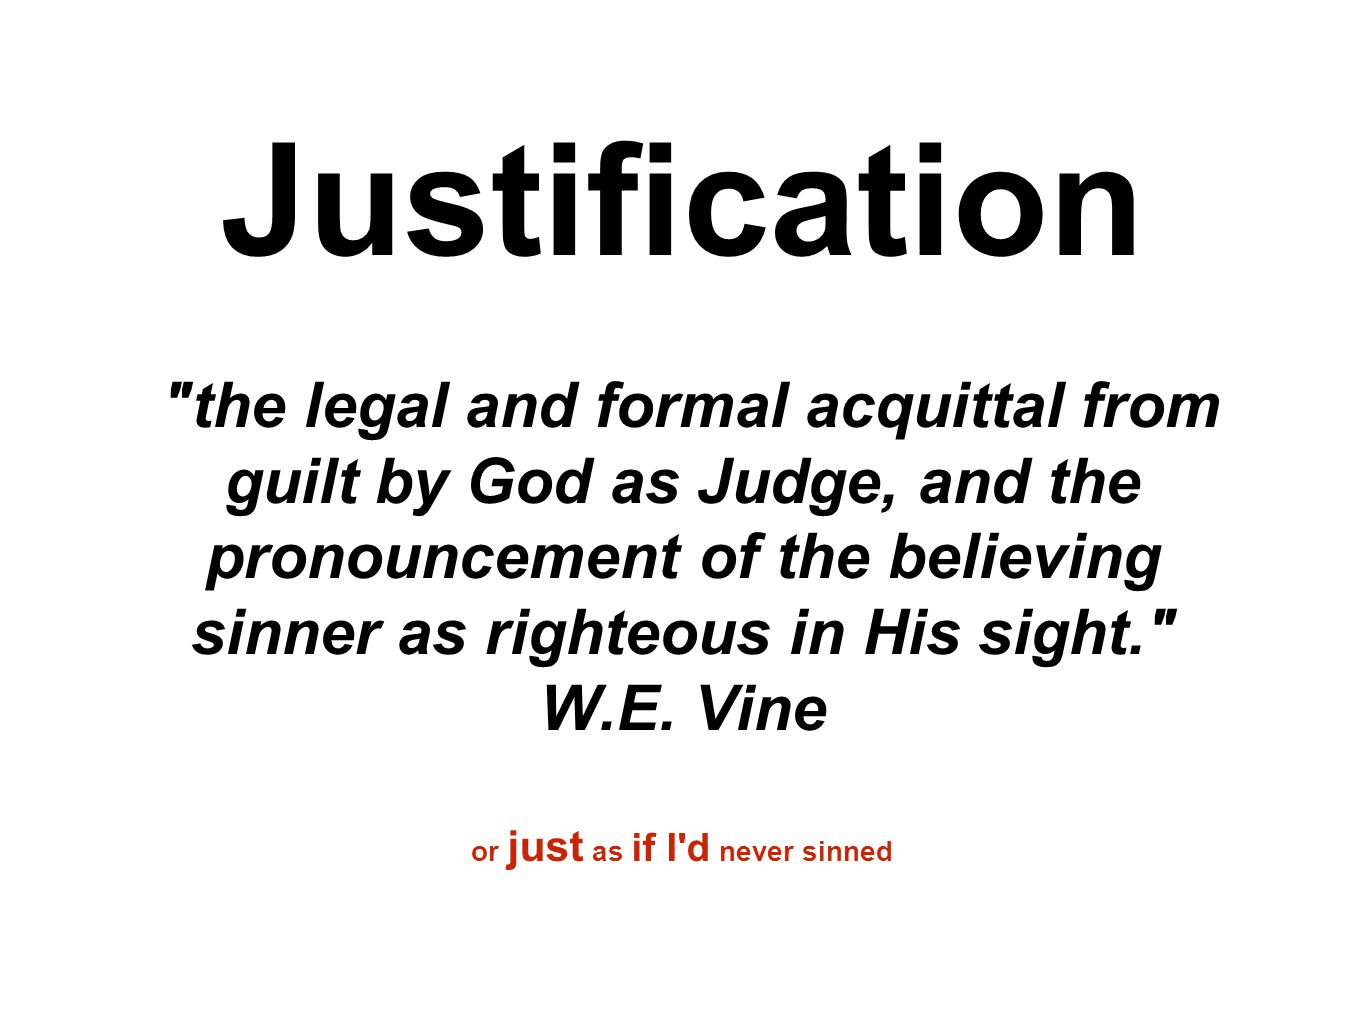 Justification the legal and formal acquittal from guilt by God as Judge, and the pronouncement of the believing sinner as righteous in His sight. W.E.